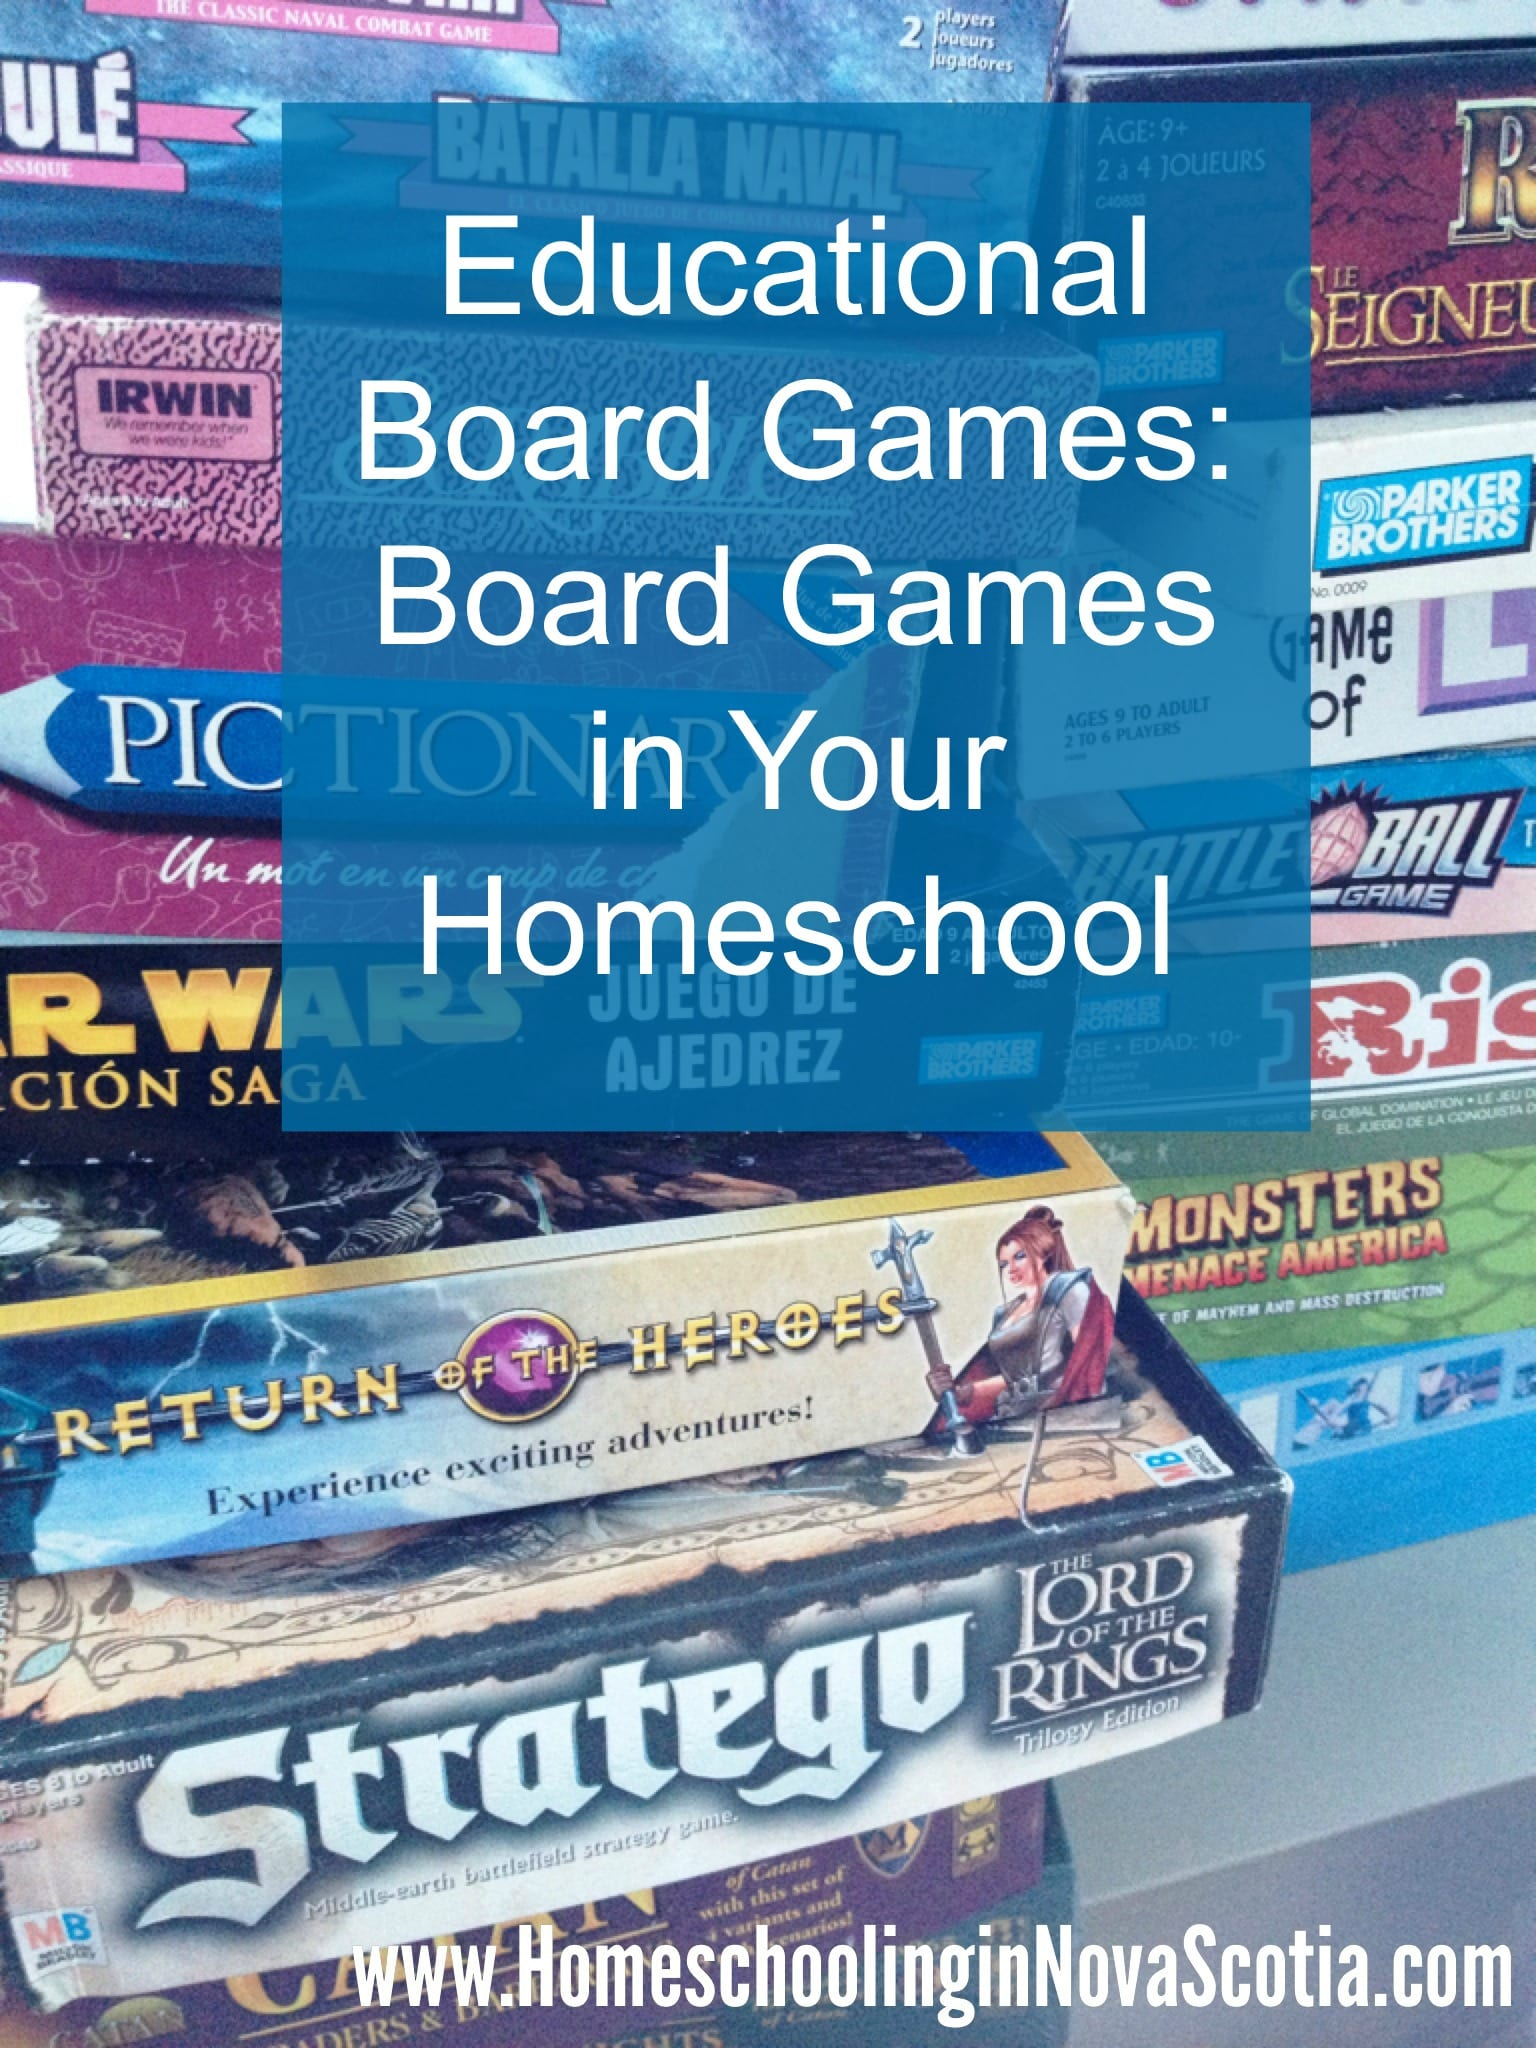 Educational Board Games: Board Games in Your Homeschool